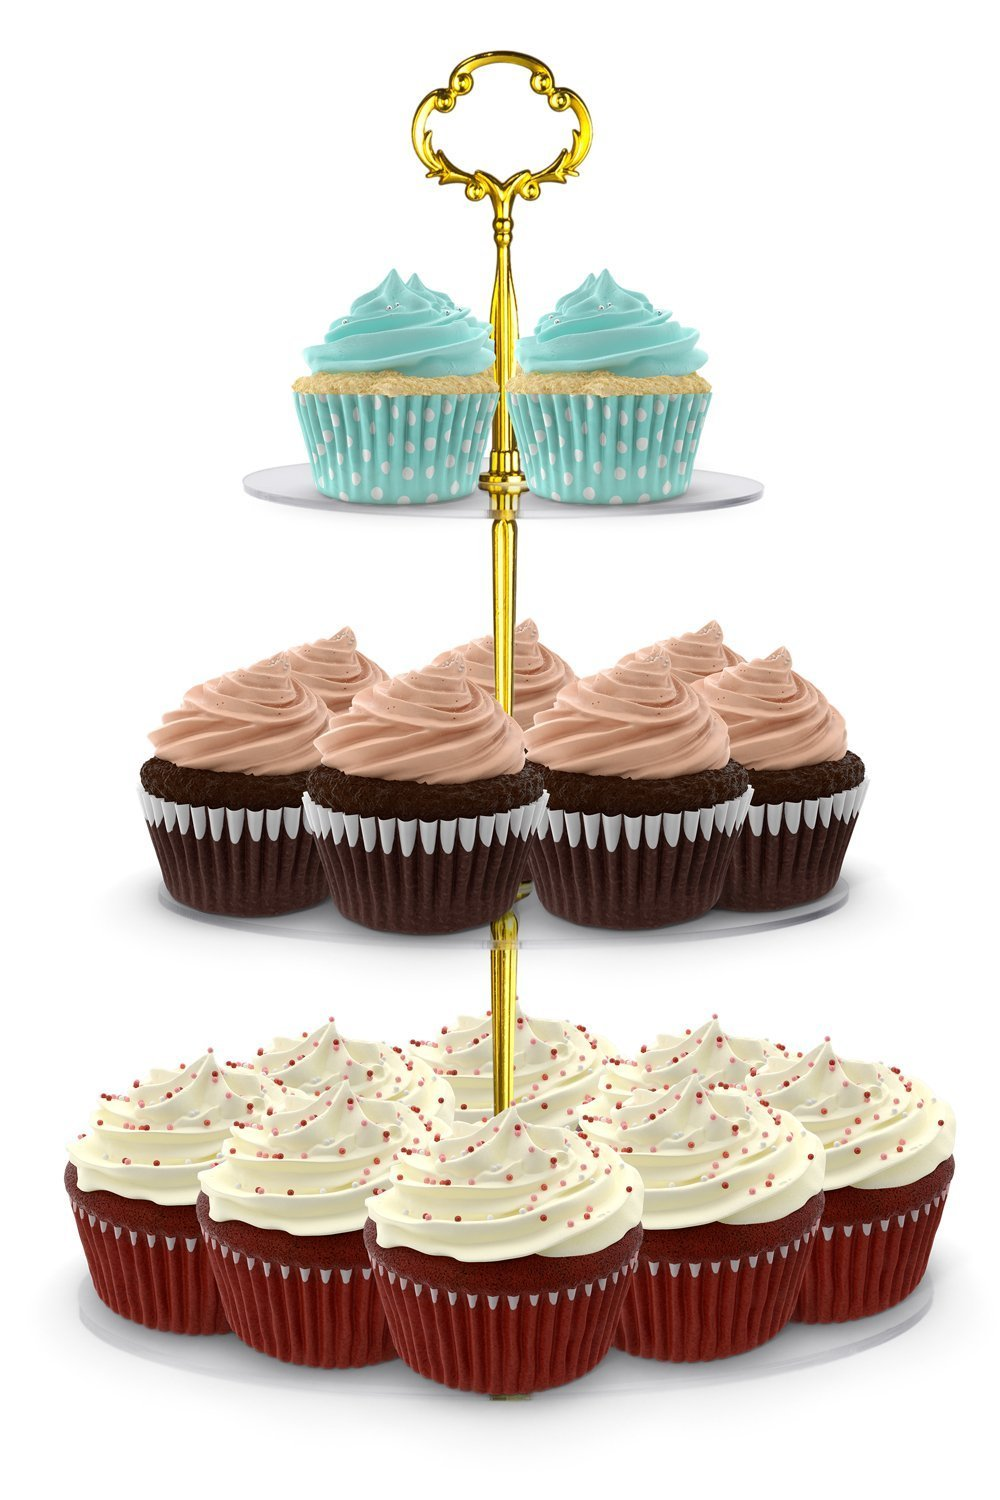 Cupcake Tower Utenlid Acrylic 3-Tier Round Stacked Party Cupcake Stand with Stable Screw-On Gold Pillars Tiered Cupcake Stand